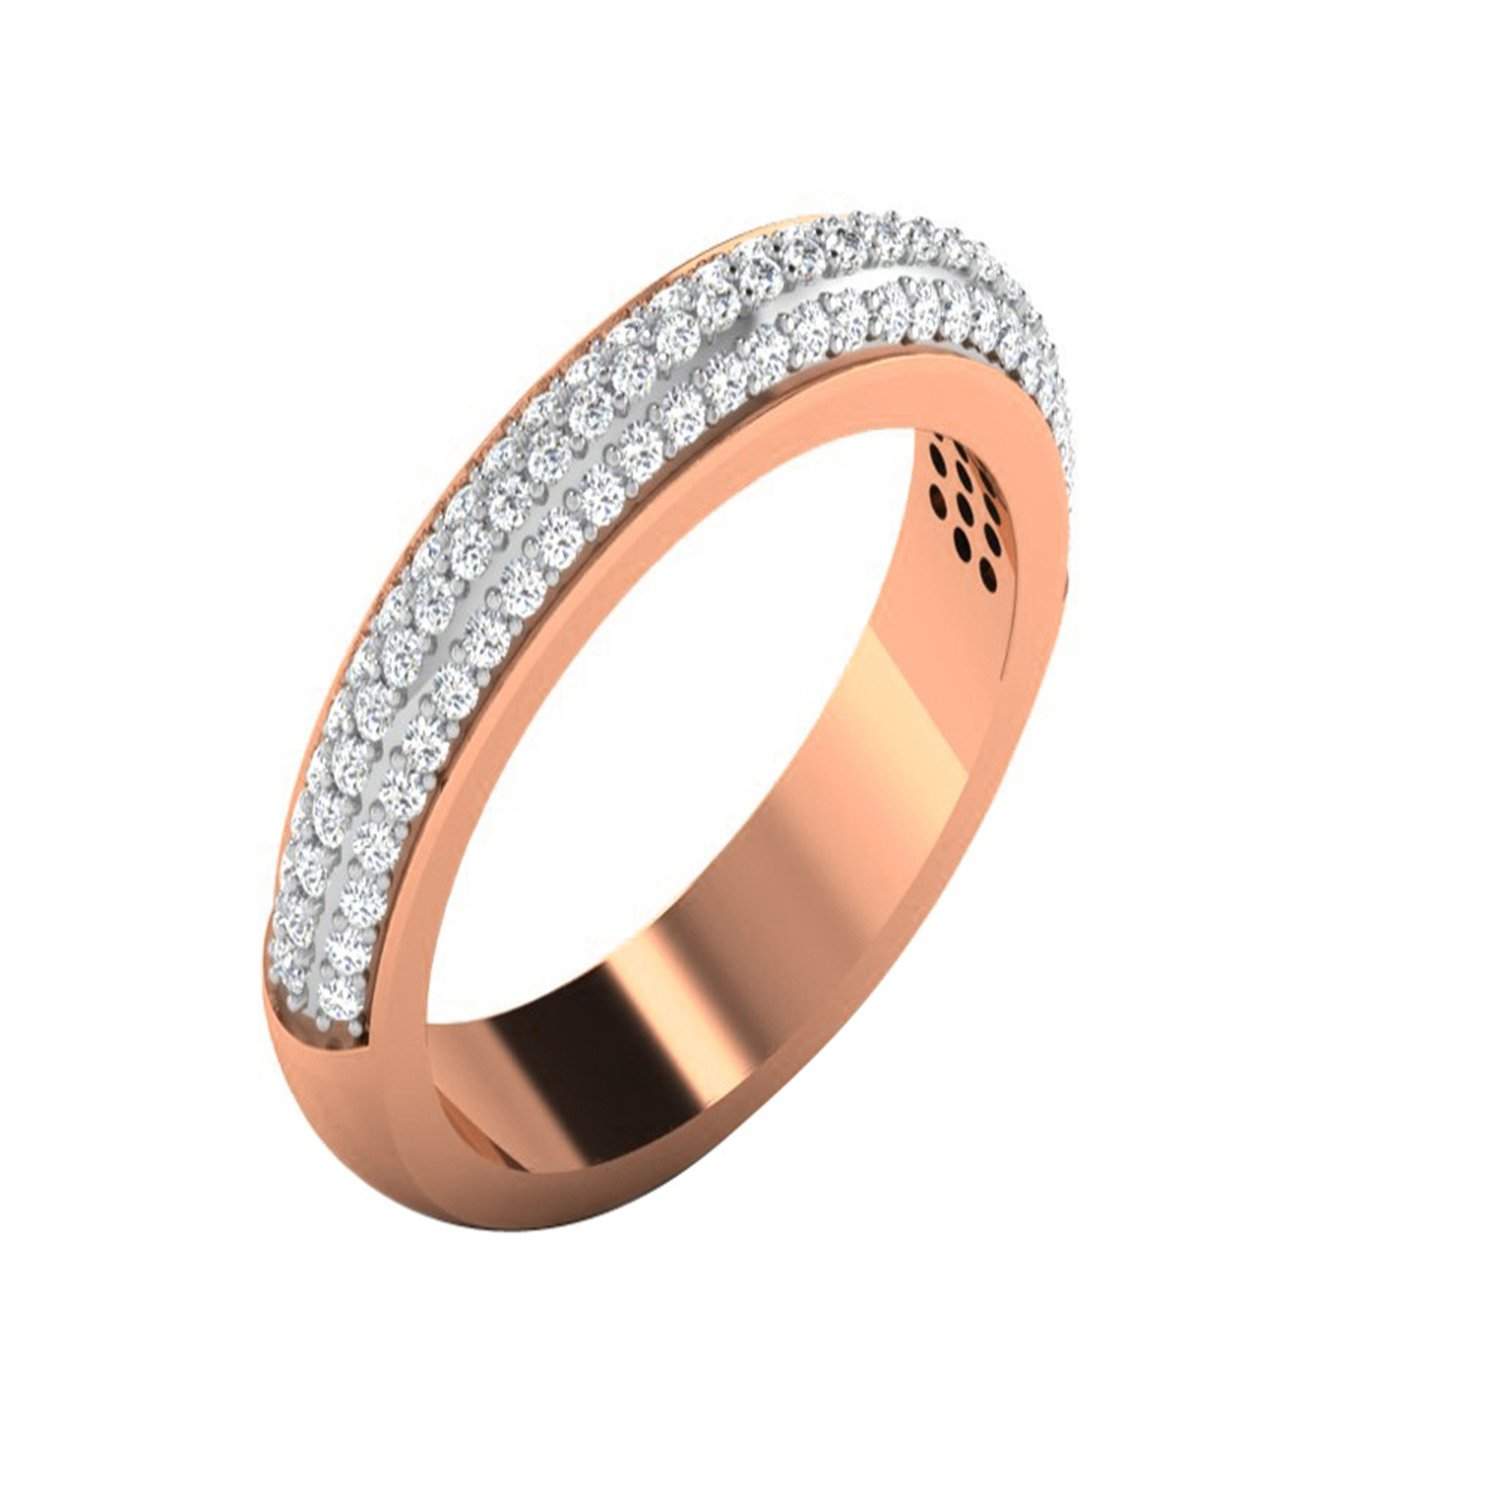 Engagement Wedding Ring 14K Two Tone Gold Fn Alloy /& Simulated Diamond Studded Jewellery